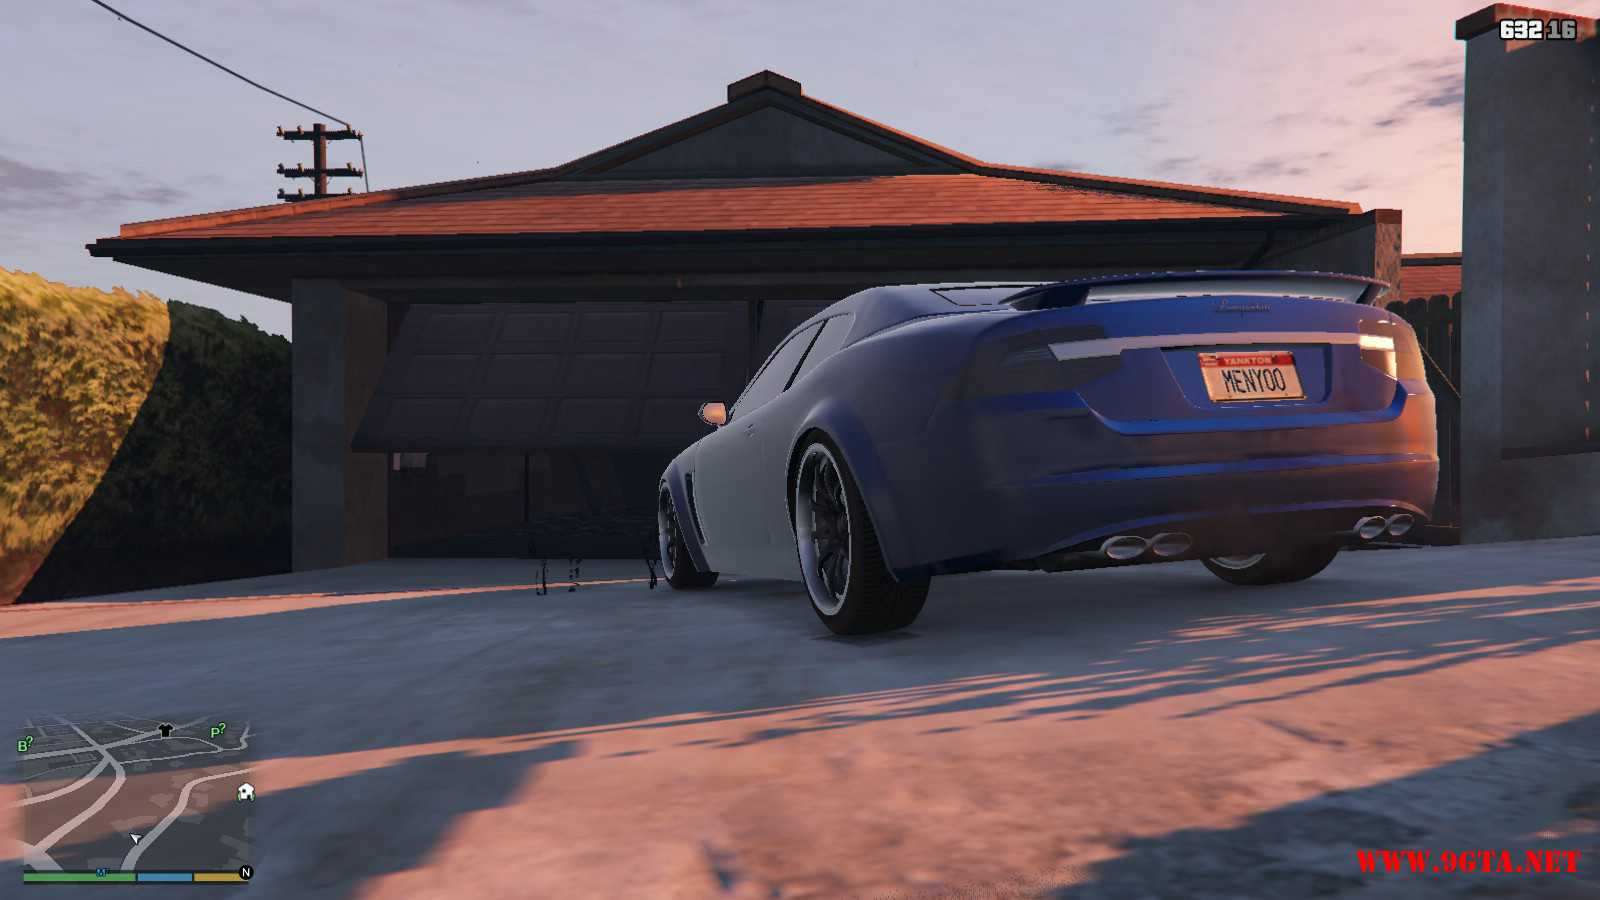 Felon Coupe GTA5 Mods (17)